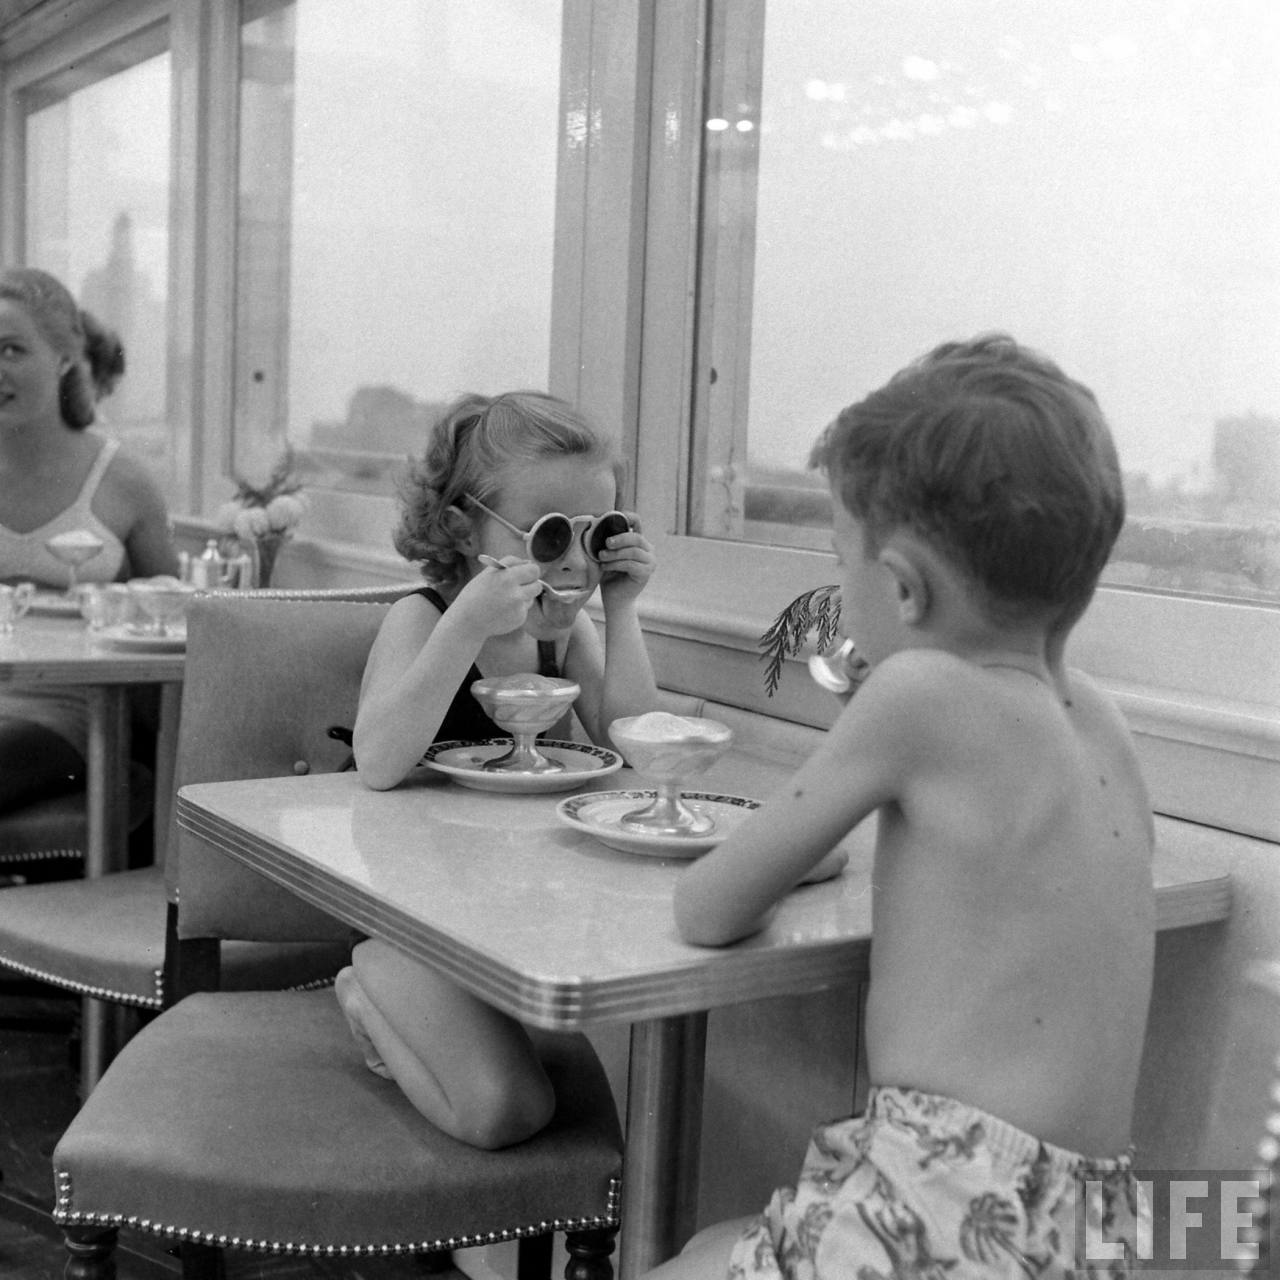 Roof sunlamps, Senator Hotel. Atlantic City, 1948. By Nina Leen